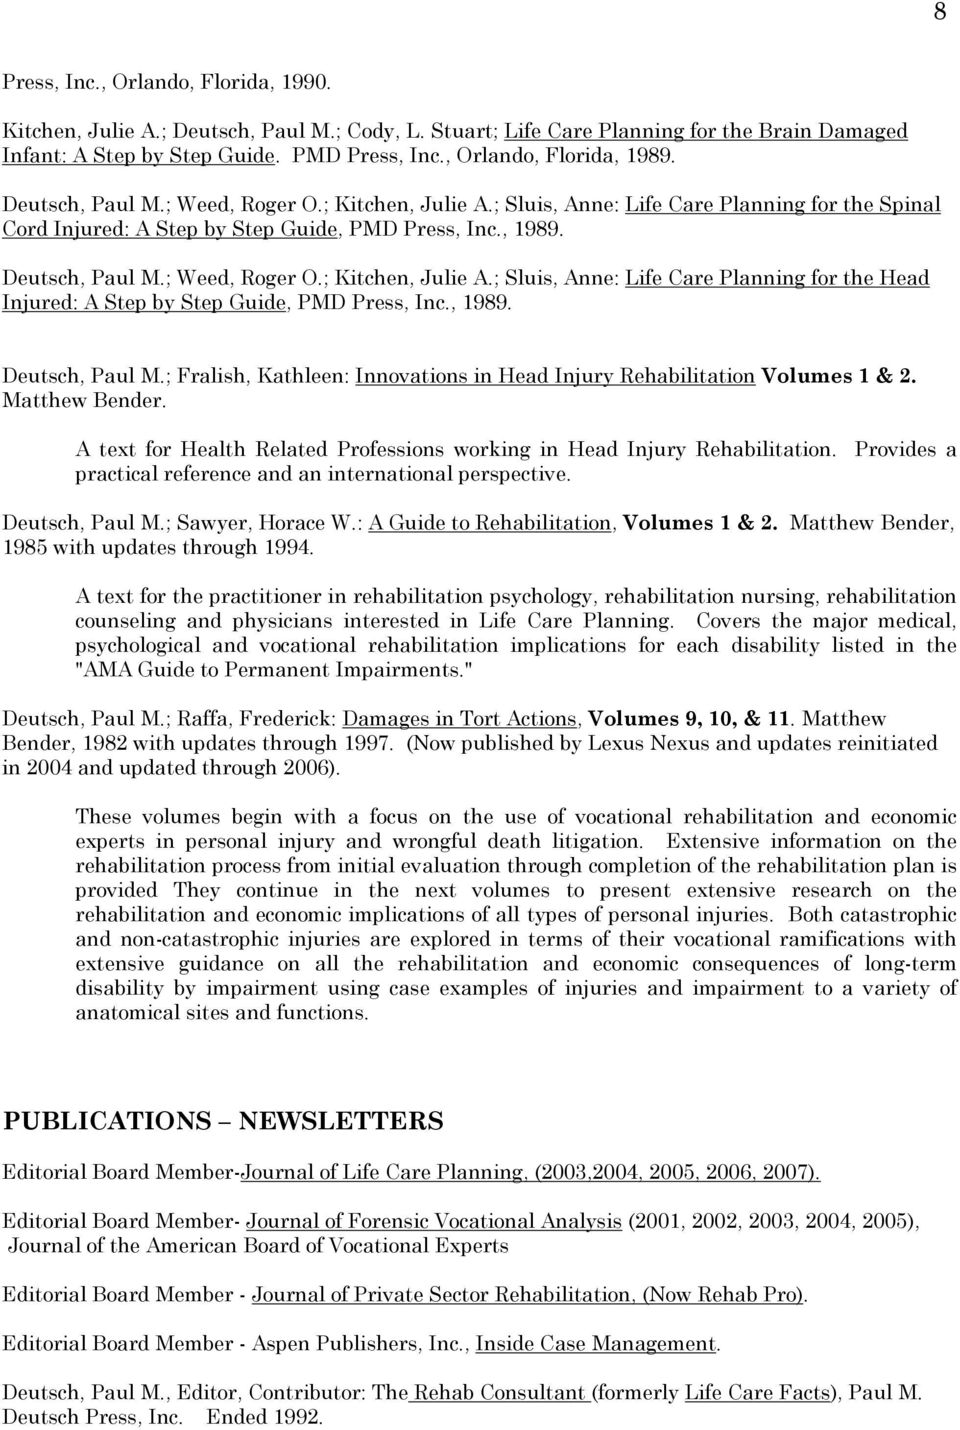 , 1989. Deutsch, Paul M.; Fralish, Kathleen: Innovations in Head Injury Rehabilitation Volumes 1 & 2. Matthew Bender. A text for Health Related Professions working in Head Injury Rehabilitation.